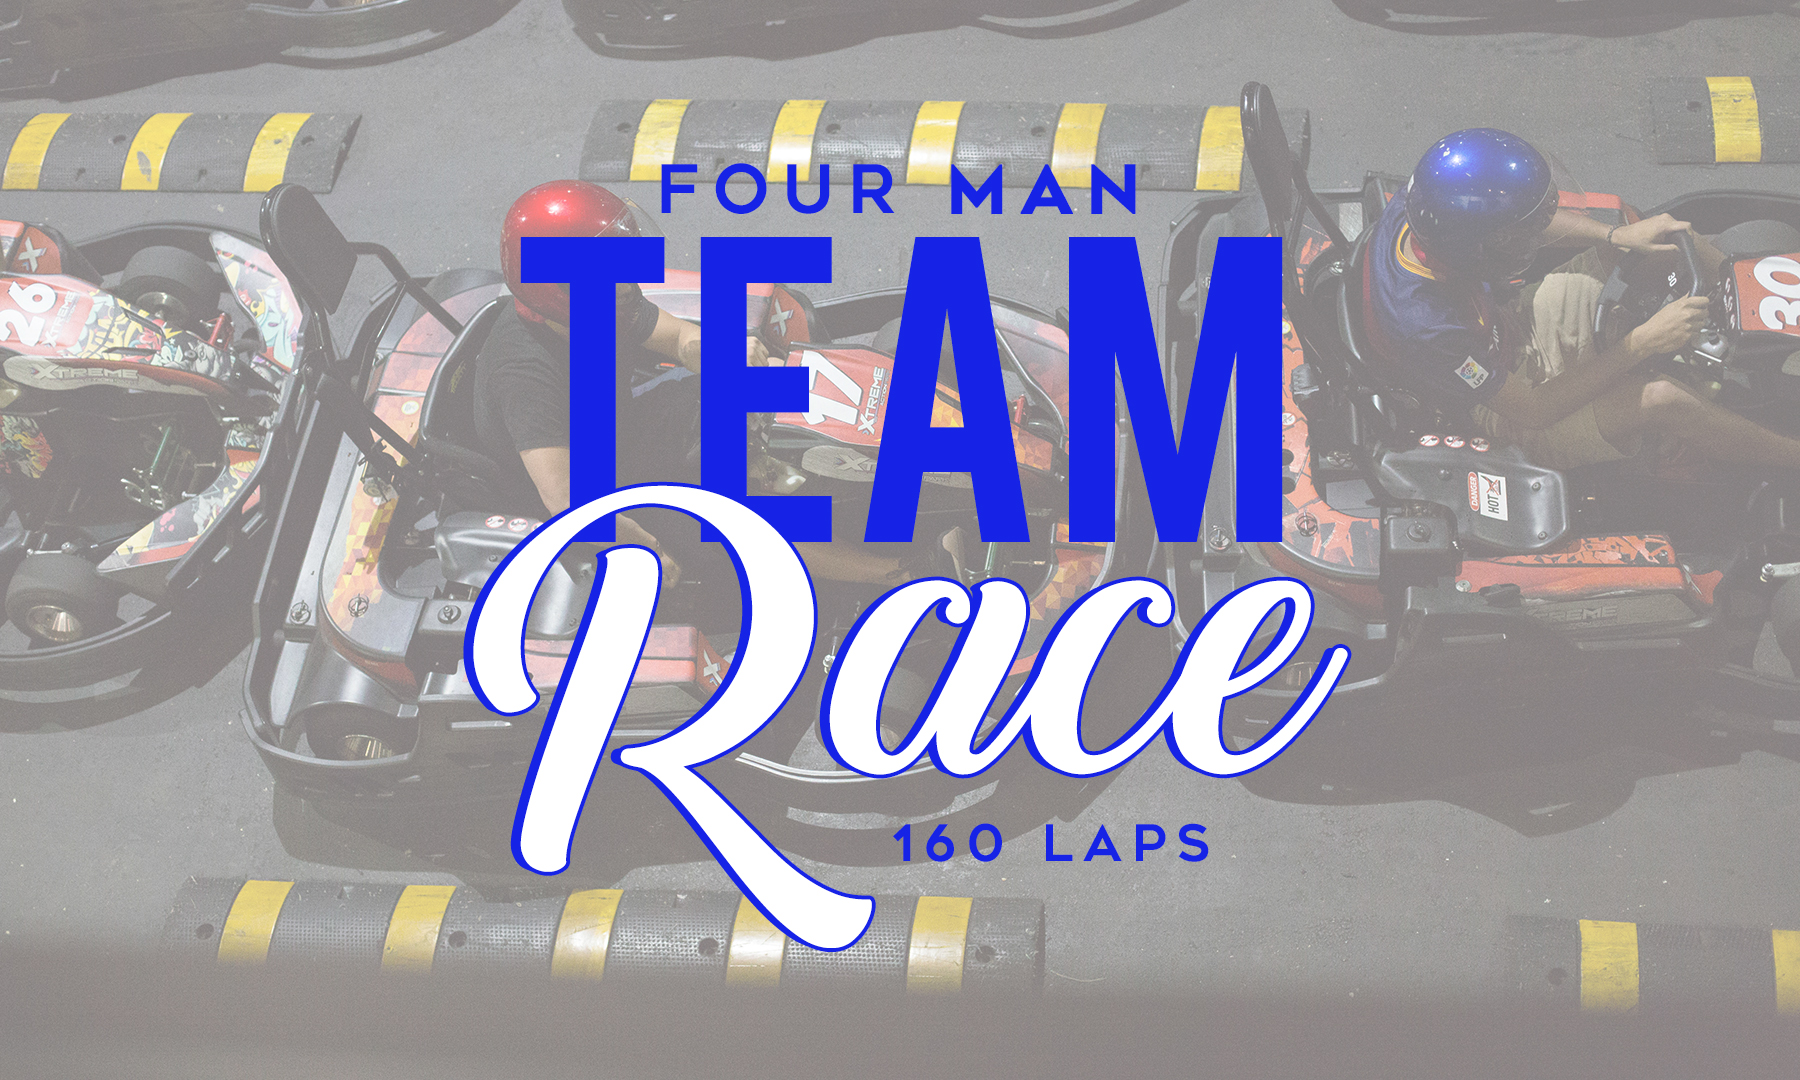 Four Man Team Race Logo and Kart Image